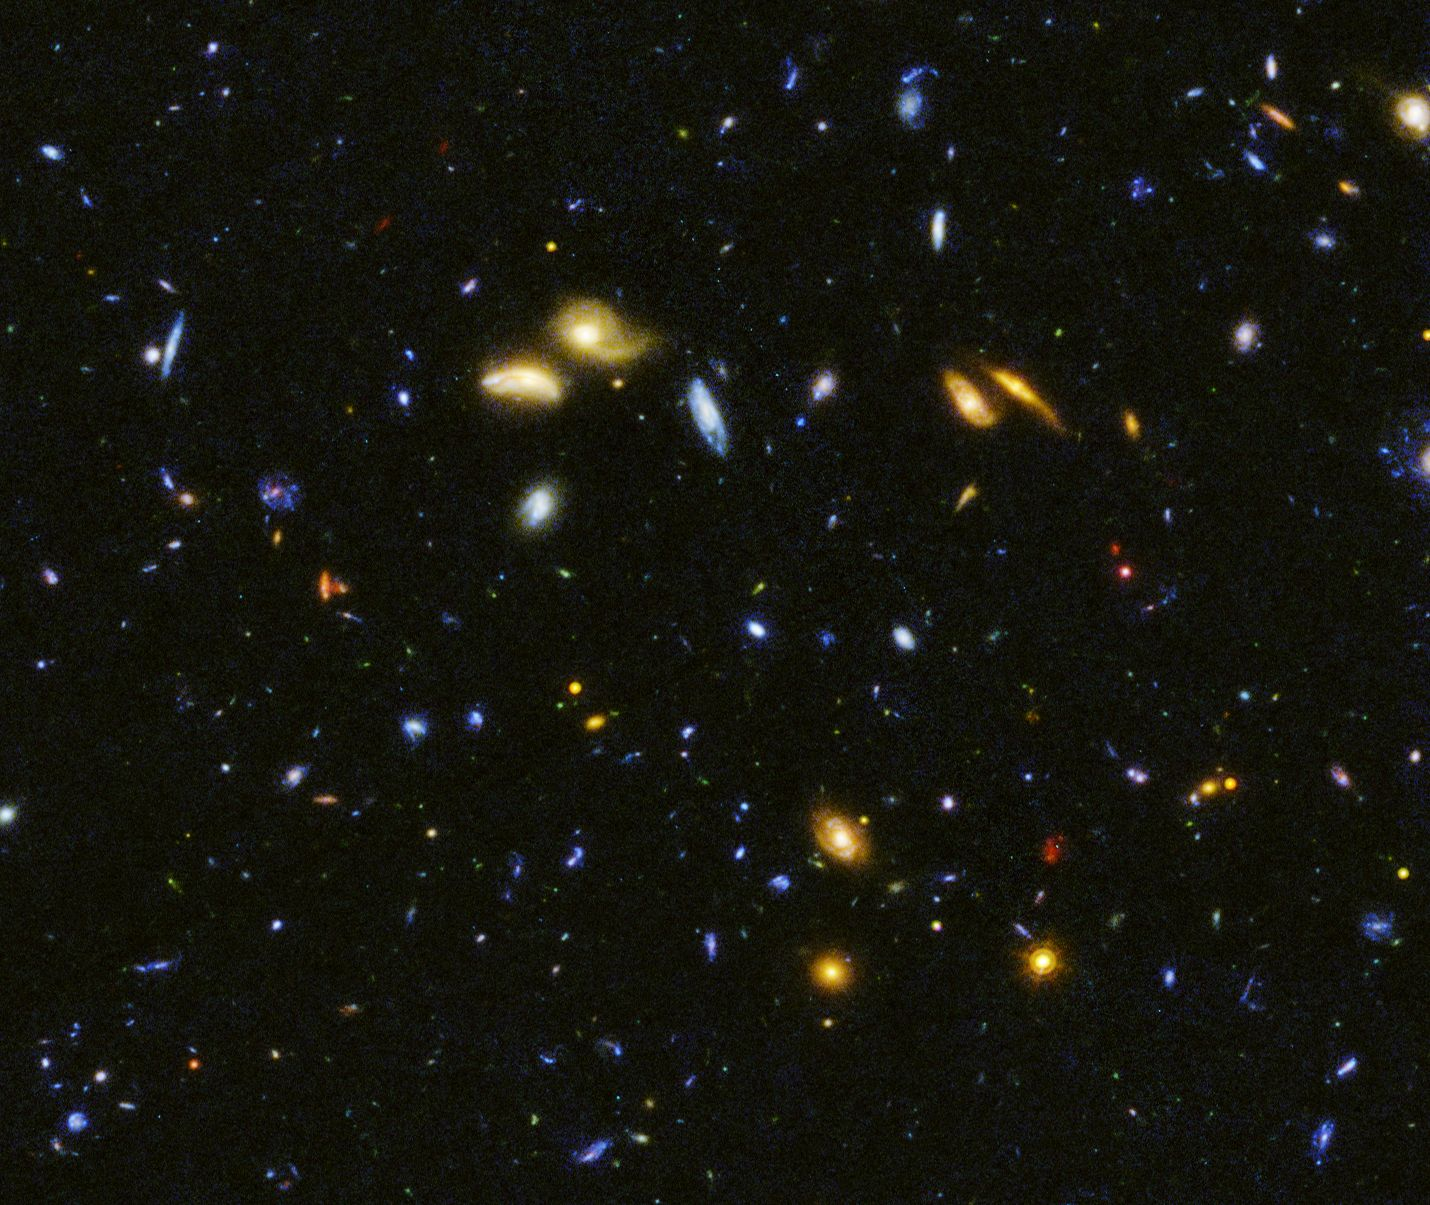 HST view of galaxies near the Big Dipper